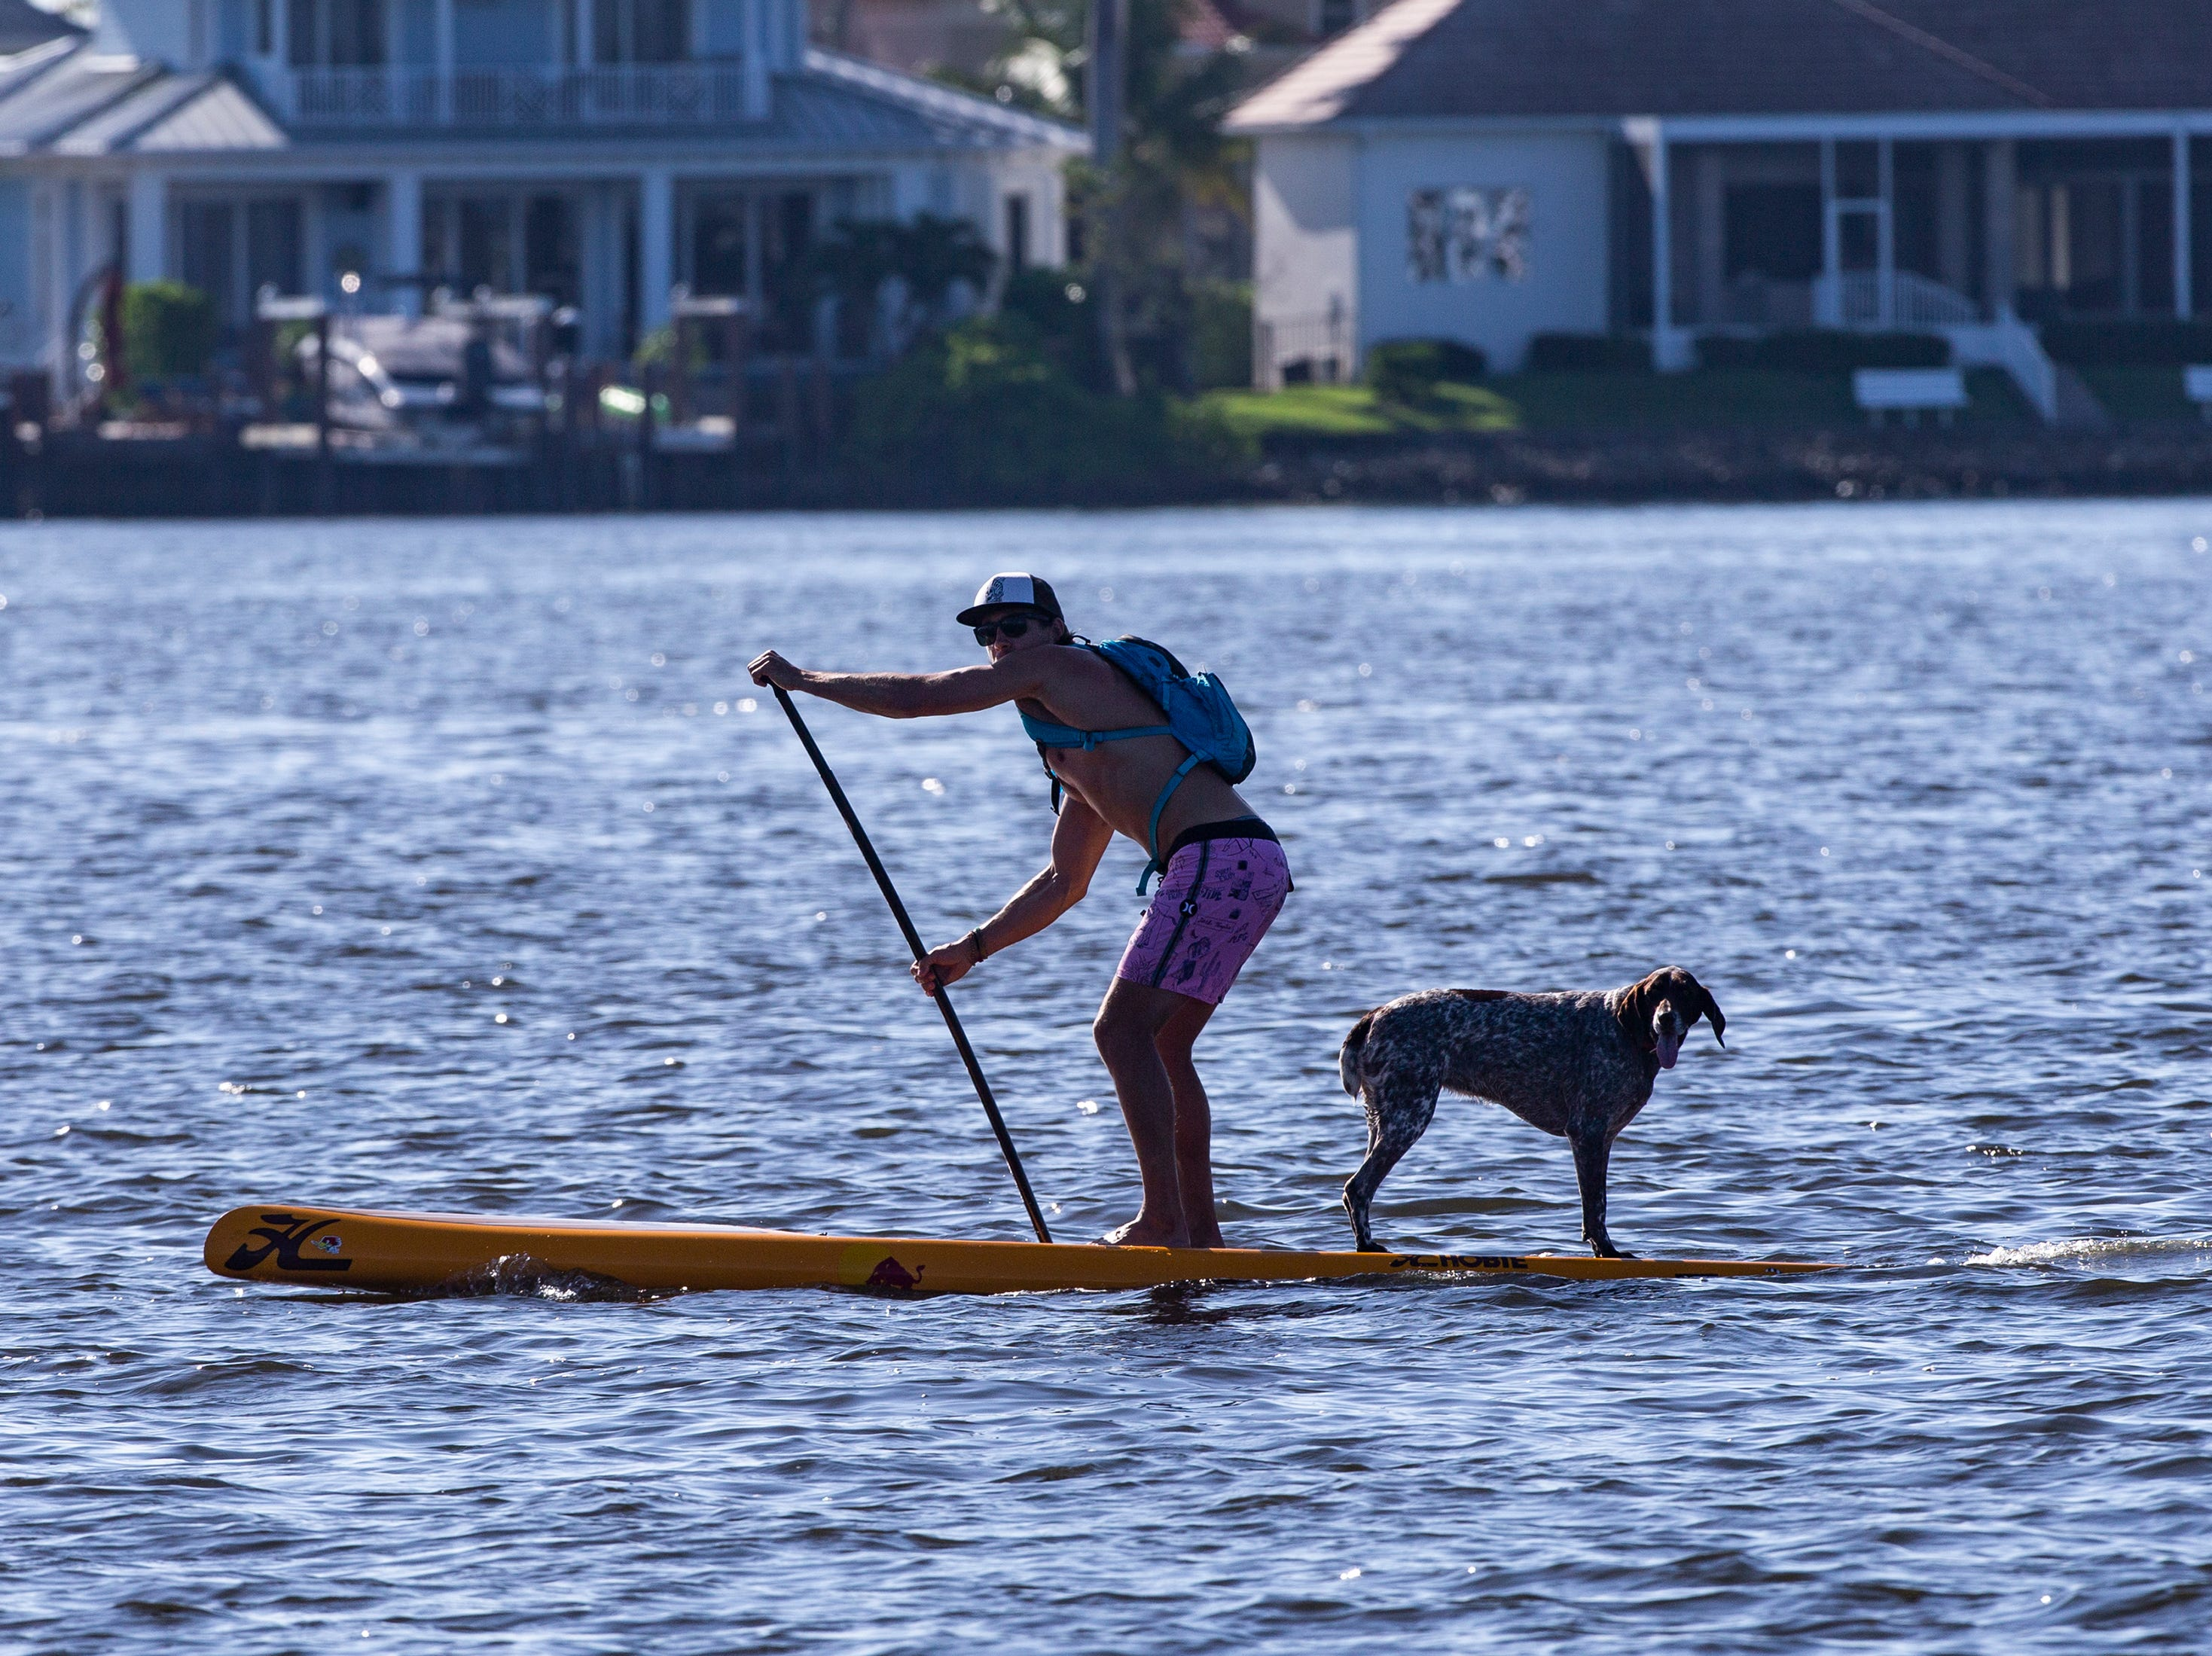 Naples resident, Iggy Sprude and his dog Charlie compete in the amateur stand up paddleboard race, Saturday, May 11, 2019, during the 43rd annual Great Dock Canoe Race at Crayton Cove in Naples.